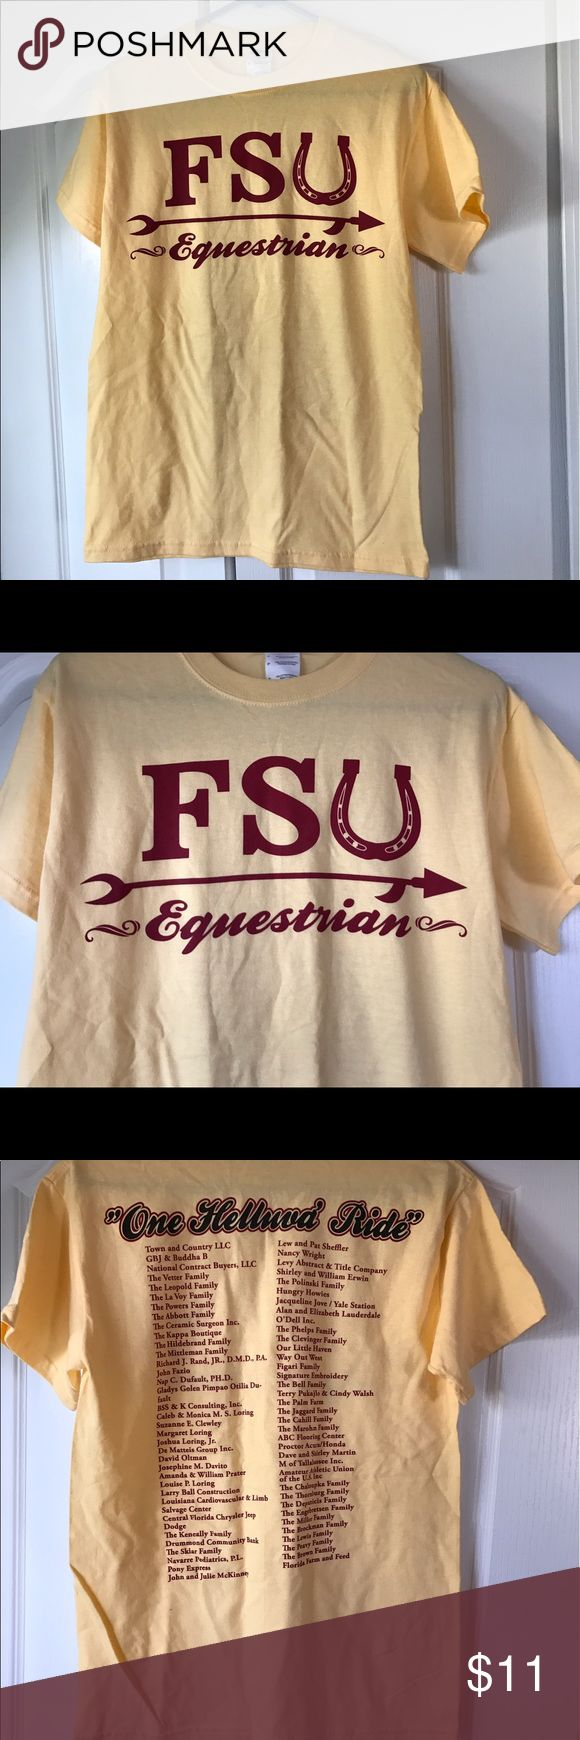 Florida State University Equestrian women's small Florida State Women's small equestrian tshirt. Runs big for a small FITS more like a medium. Gorgeous Crimson and gold colors. Shirt flawless. Premier preworn condition. No rips, stains, holes, tears, or excess wear. Looks brand new. Featured on the SAINTS VINTAGE RESALE channel on YouTube. https://youtu.be/RZ3O5yRPflc unknown Tops Tees - Short Sleeve